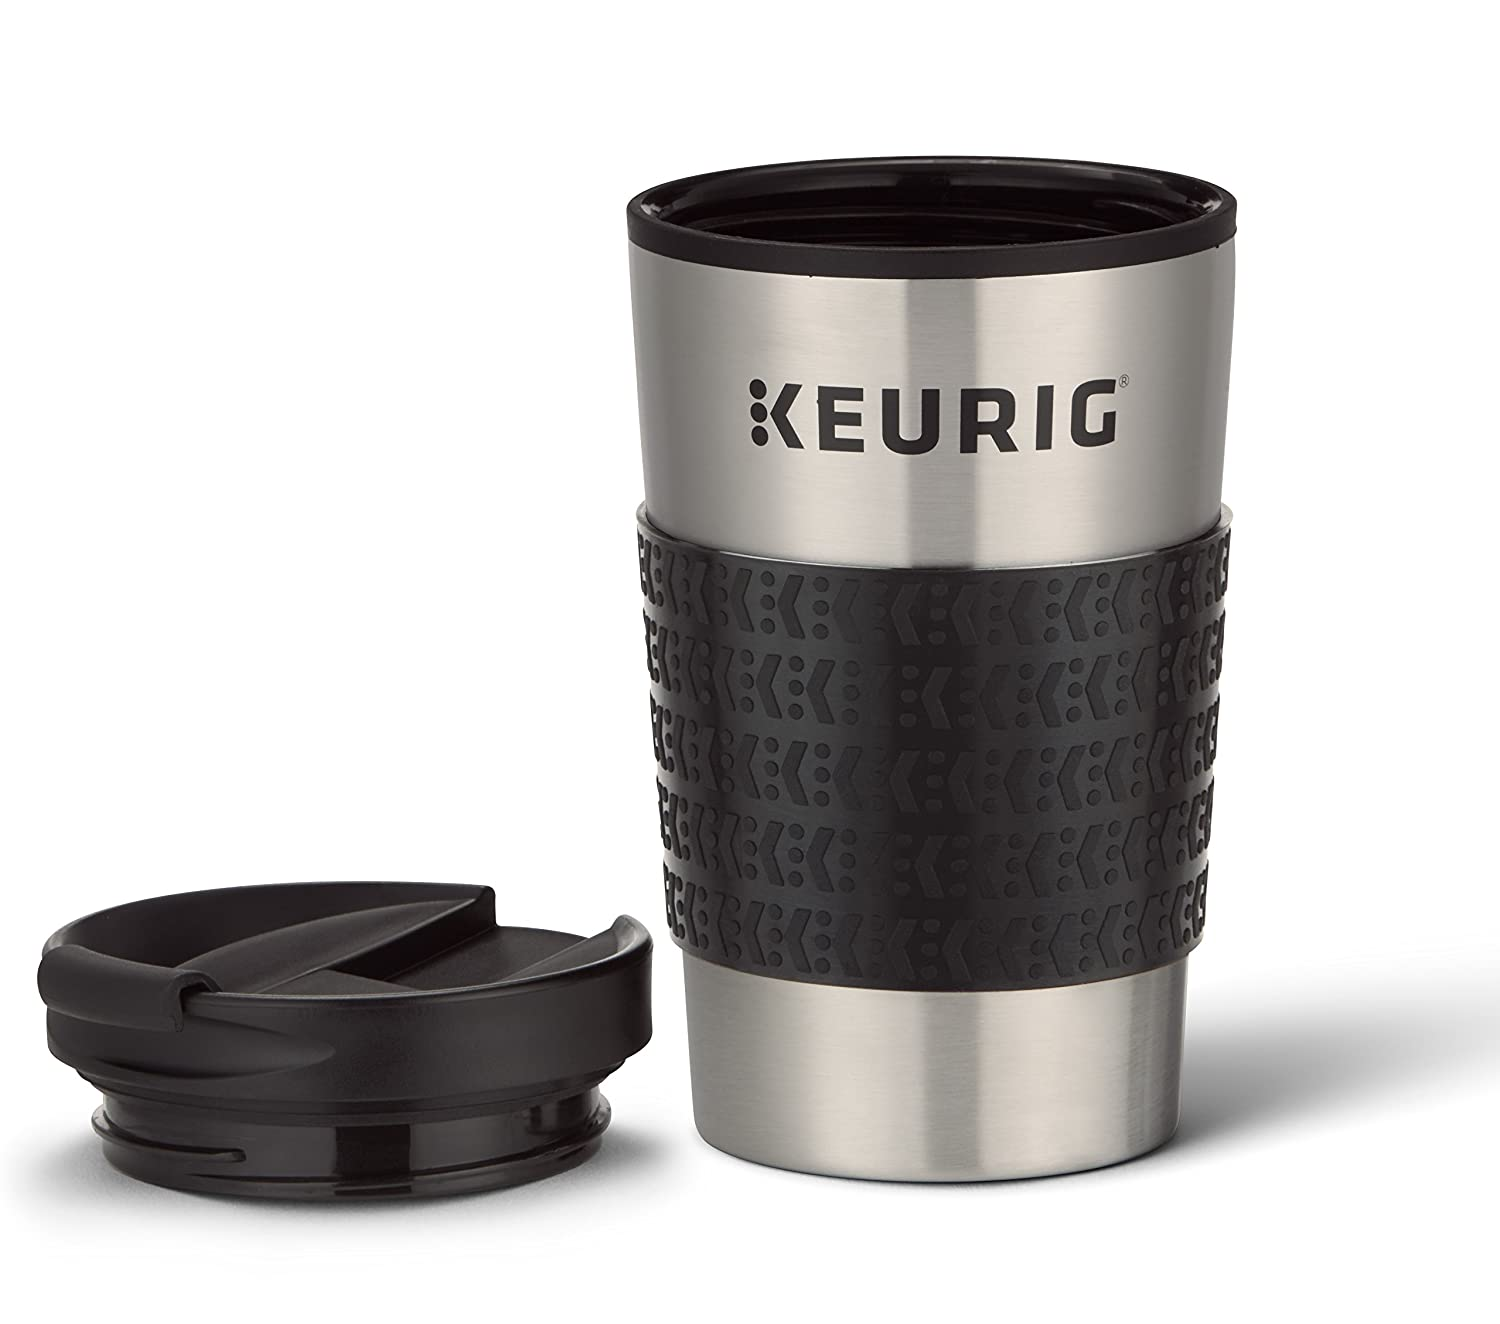 Keurig 12 oz Stainless Steel Travel Mug (120302)